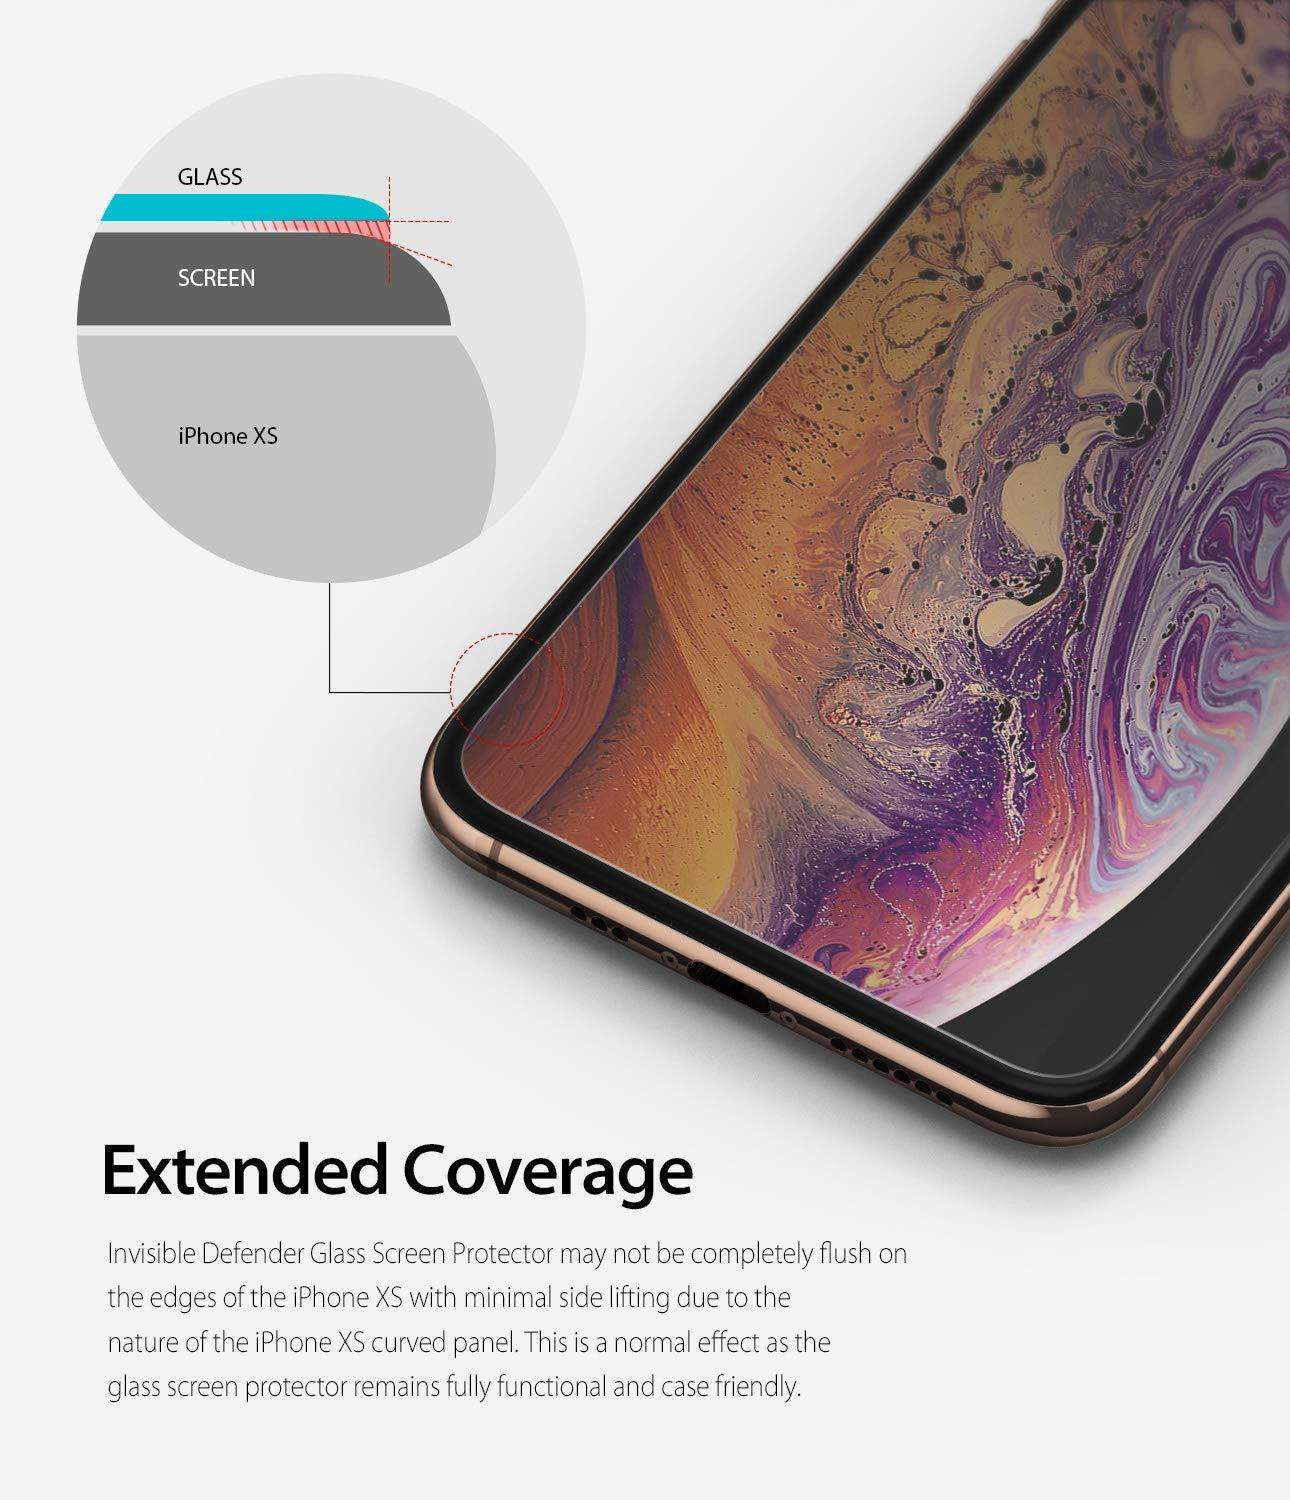 ringke invisible defender for iphone xs tempered glass screen protector extended coverage